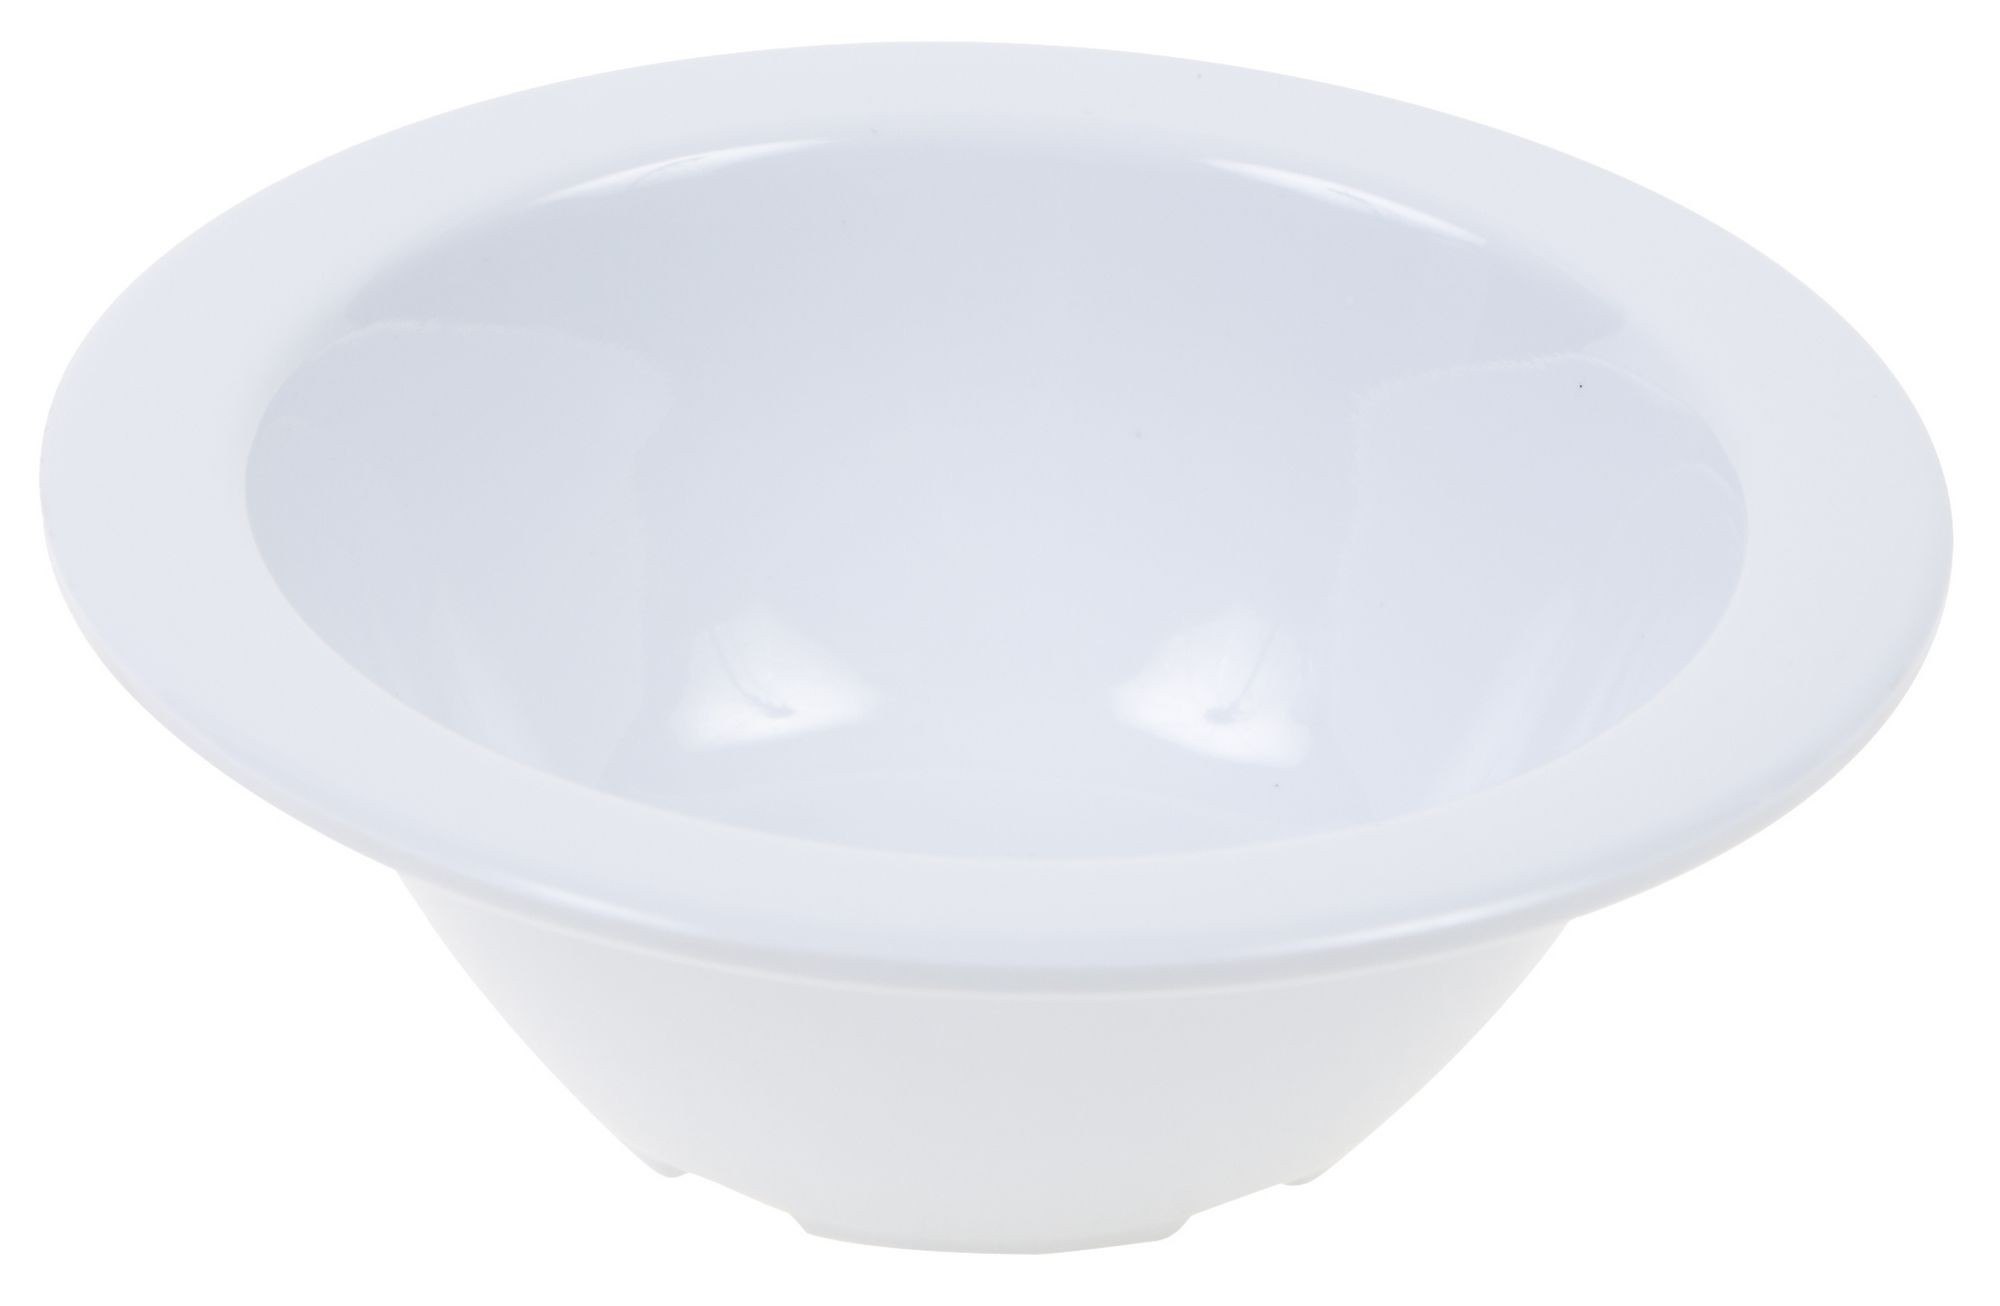 Winco MMB-4W White Melamine Fruit Bowl, 4 oz.